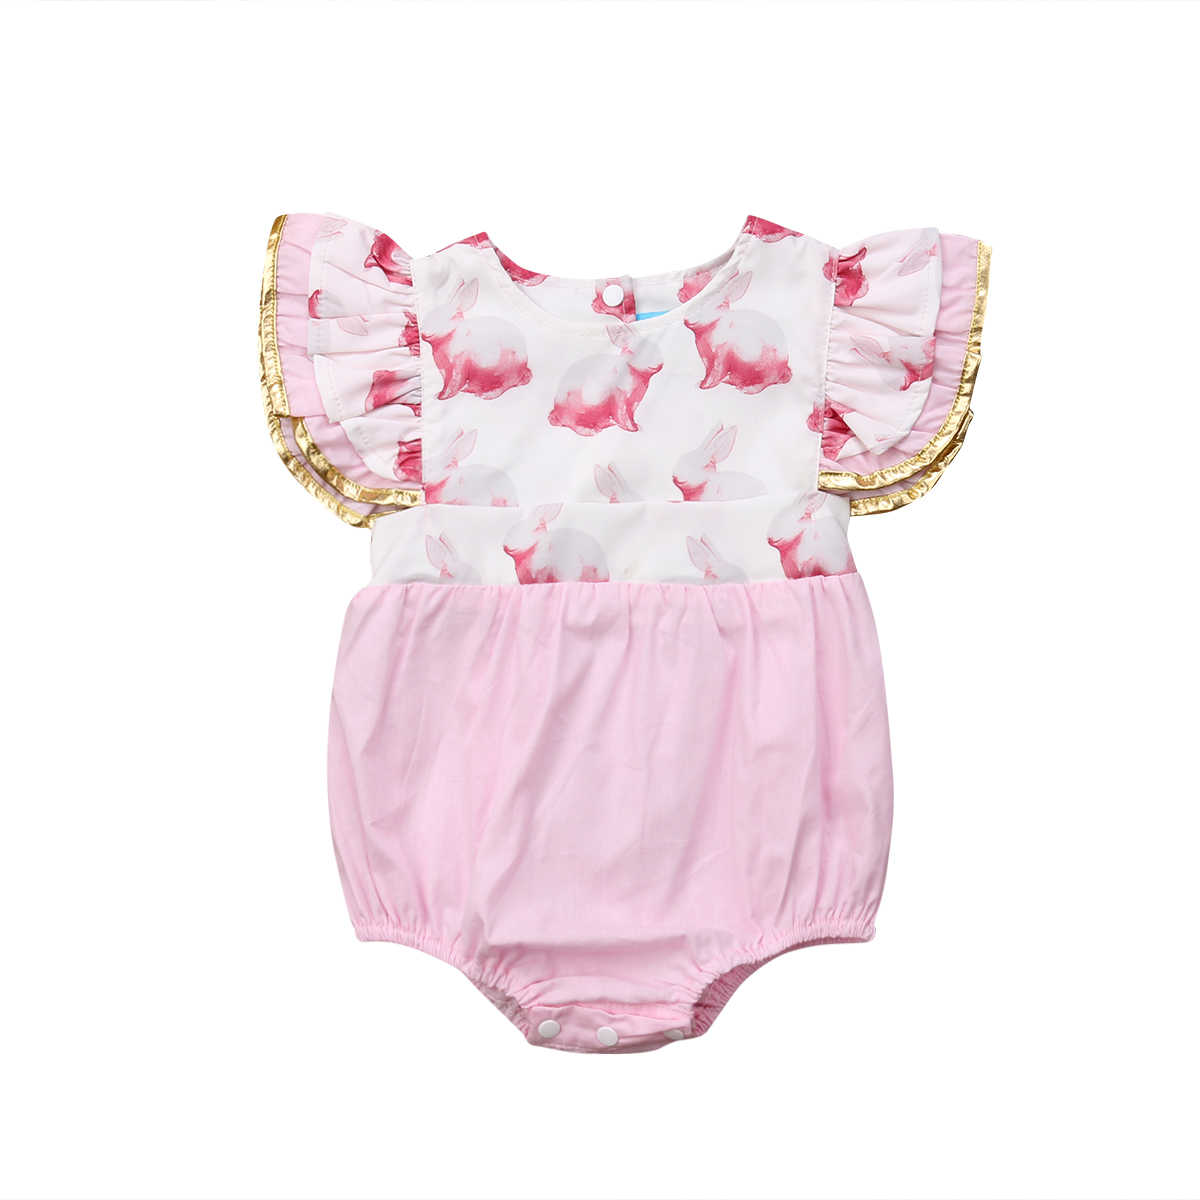 83a59d3e4c7f Detail Feedback Questions about Toddler Newborn Baby Girl Bunny Romper  Summer Ruffles Short Sleeve Infant Girl Sunsuit Jumpsuit Easter Baby Girl  Clothes on ...